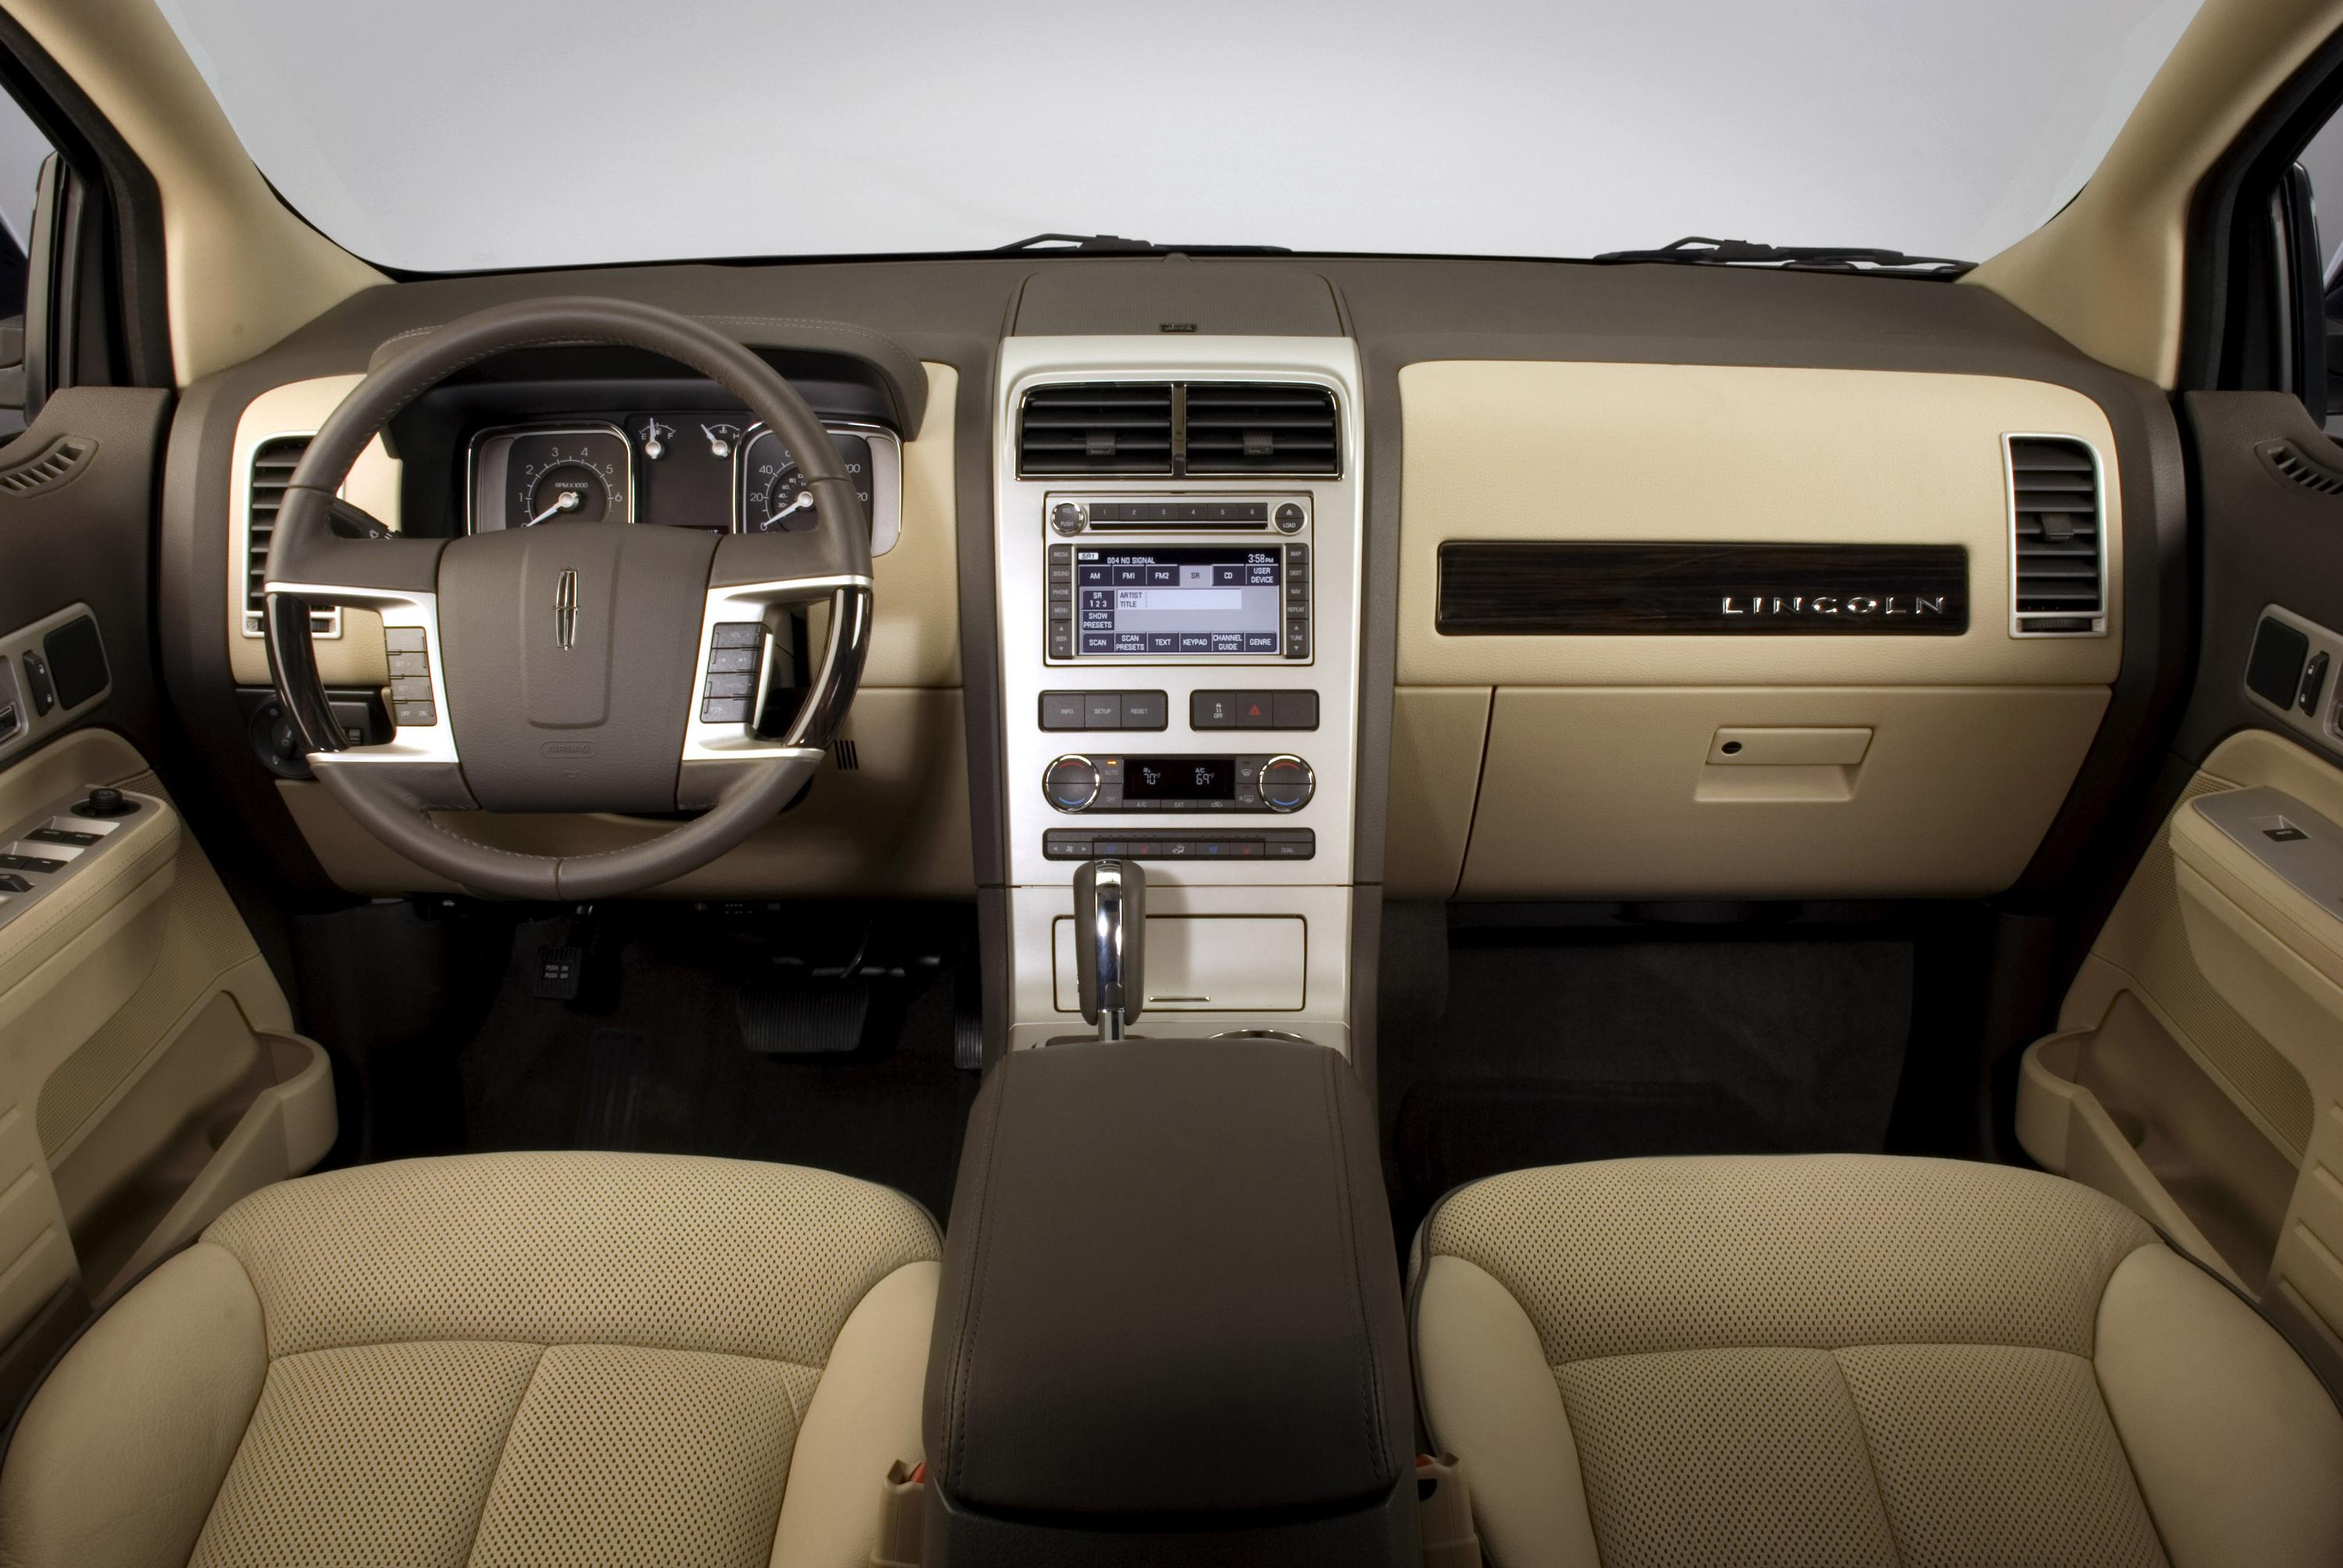 2008 Lincoln MKX Review - Top Speed